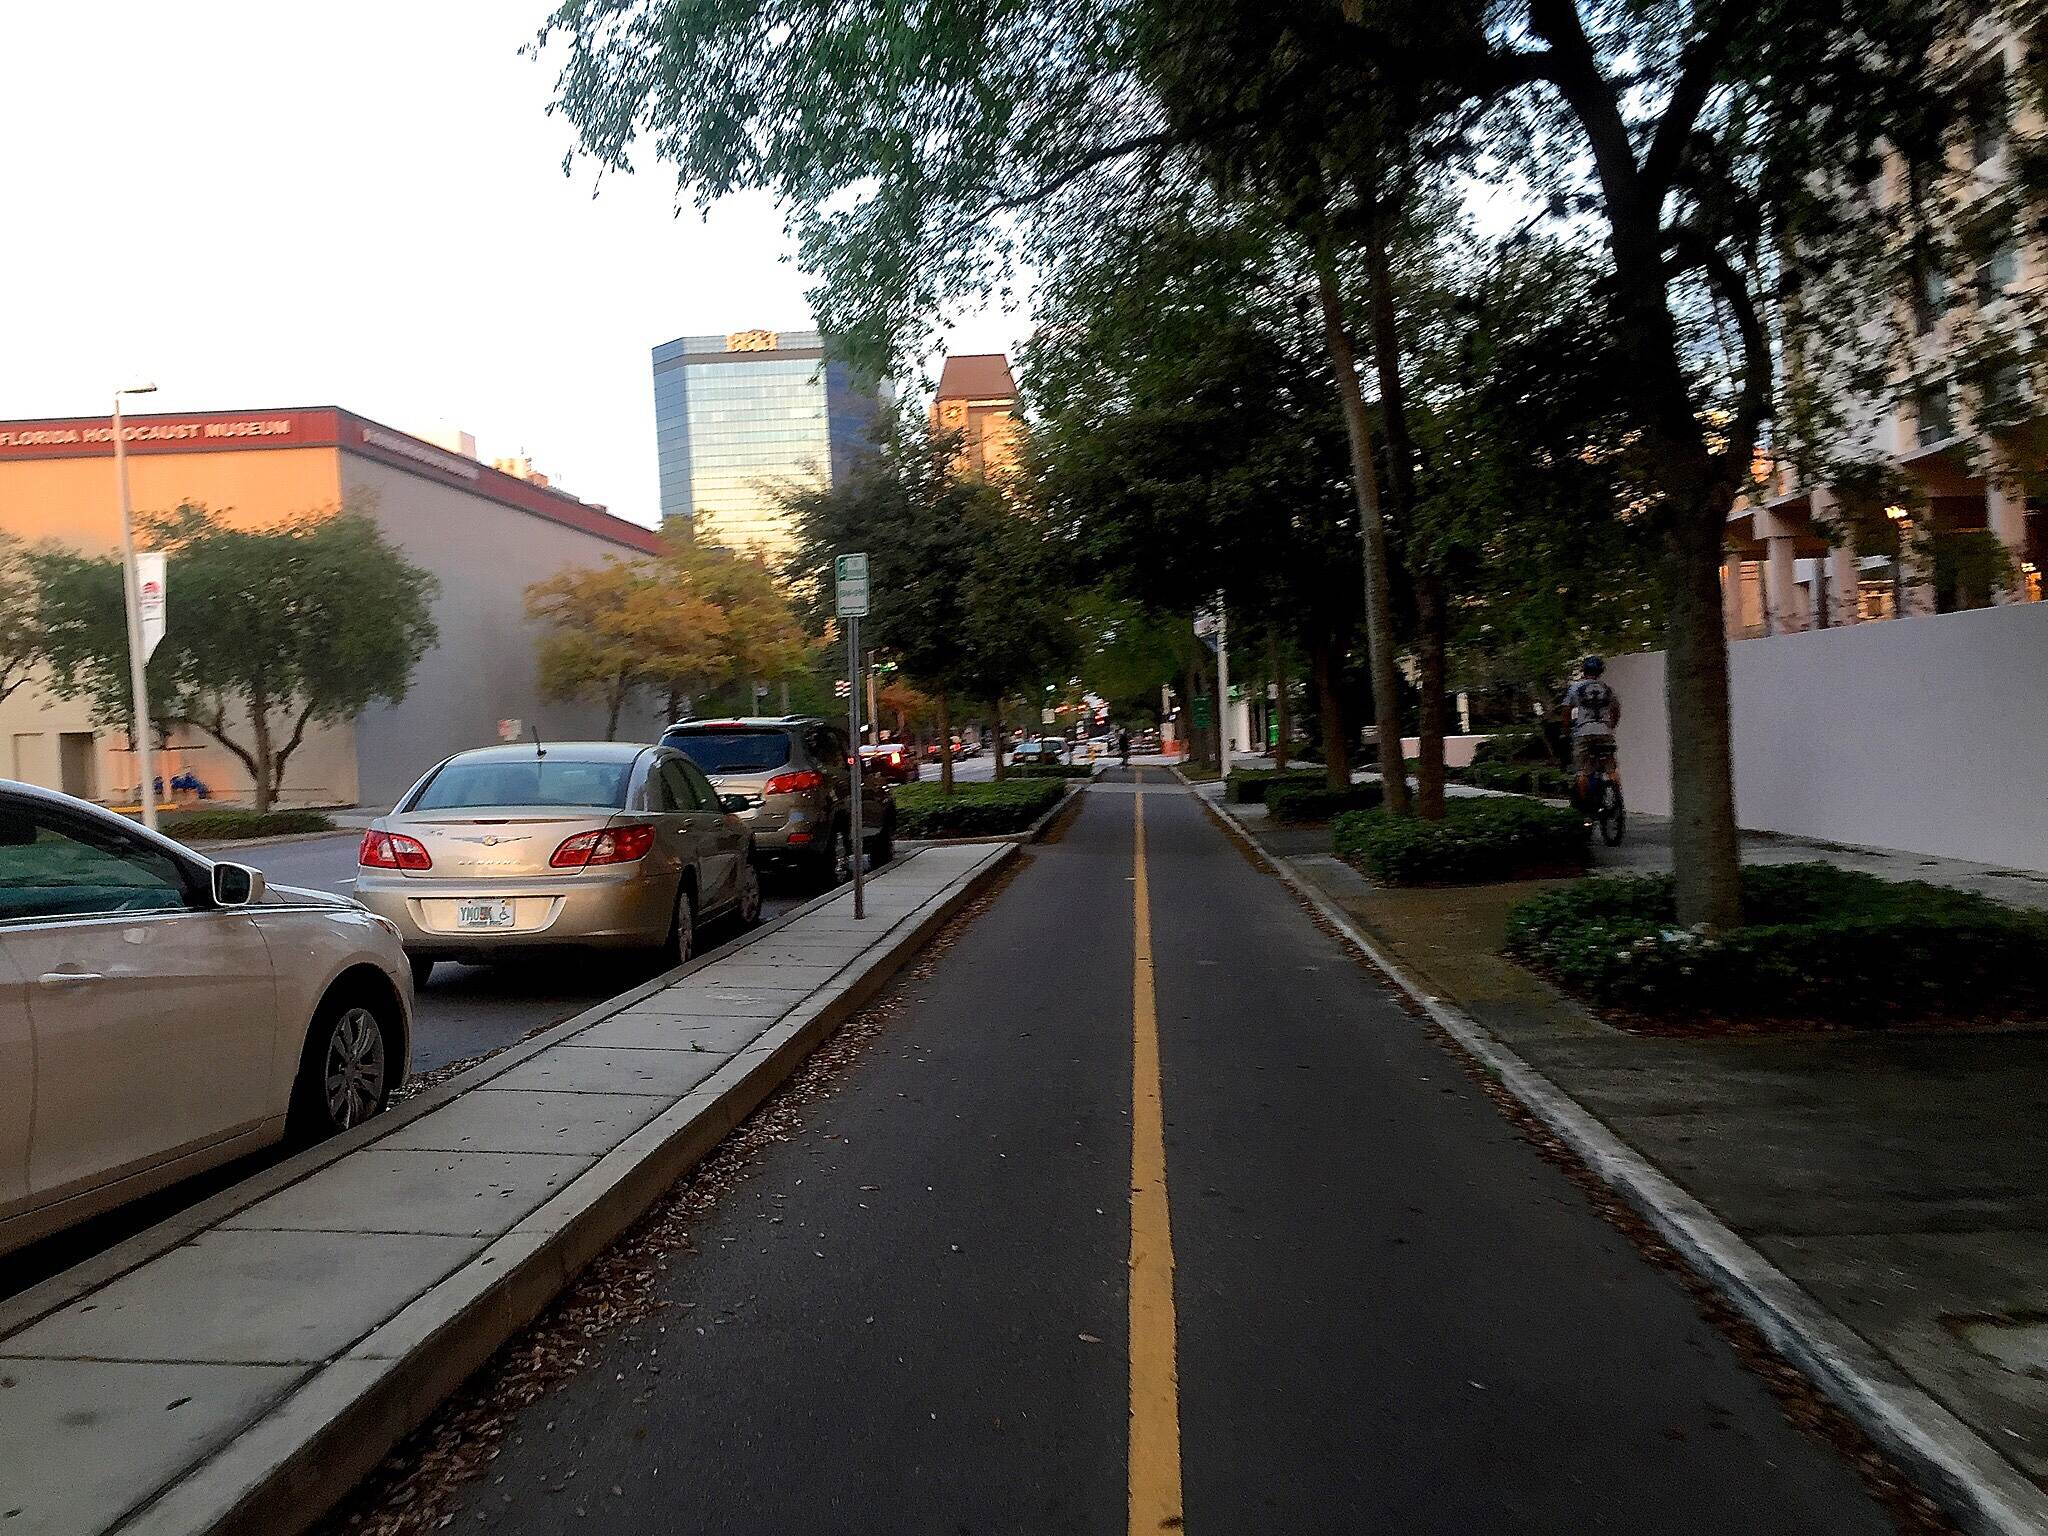 Fred Marquis Pinellas Trail Goes Through Downtown St. Pete http://youtu.be/h2ur1gxIz3s